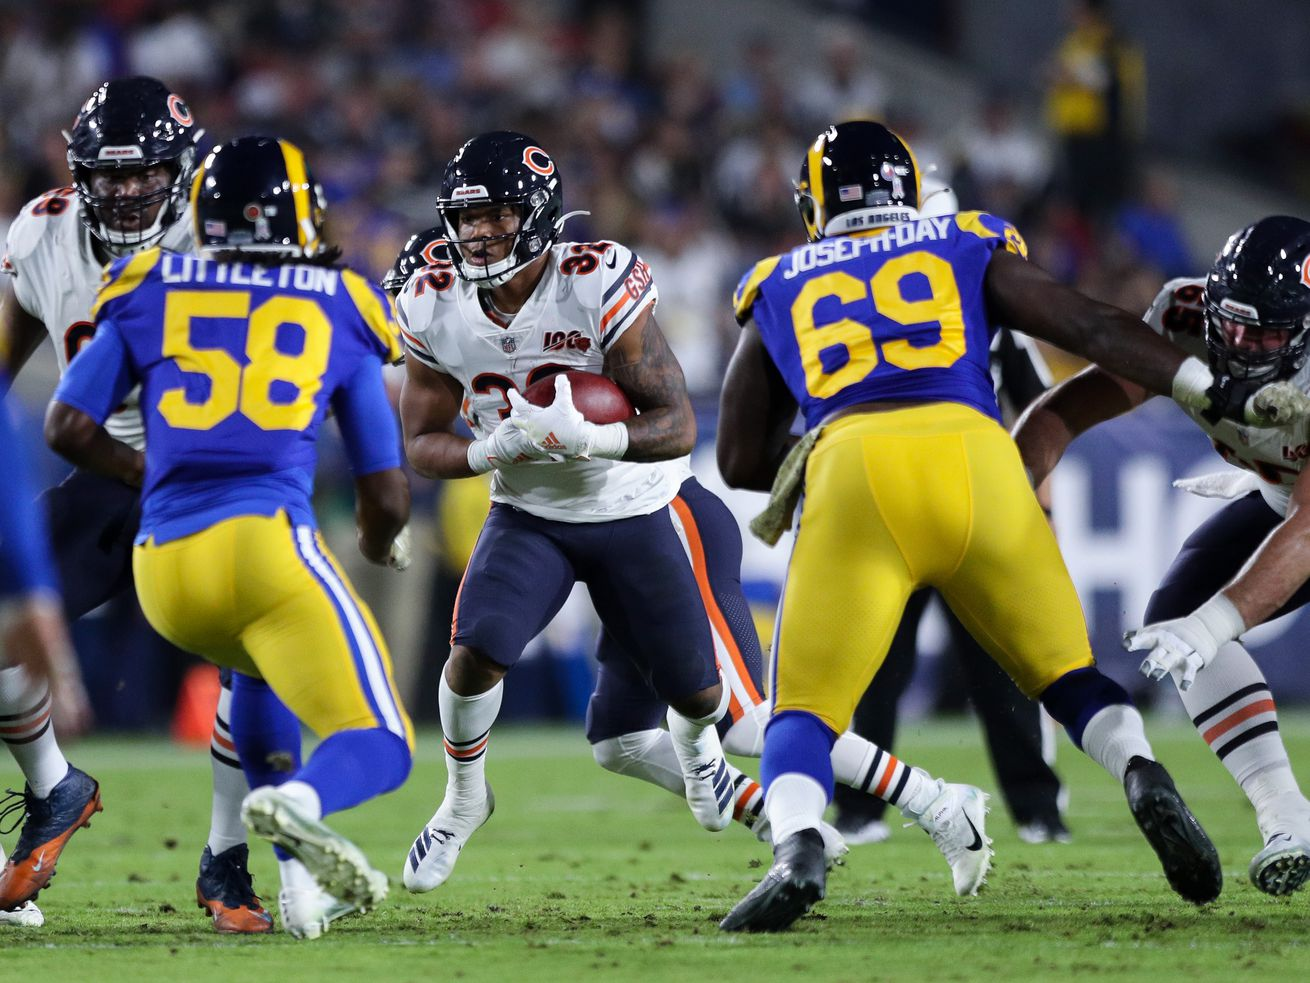 Bears RB David Montgomery plays after being game-time decision